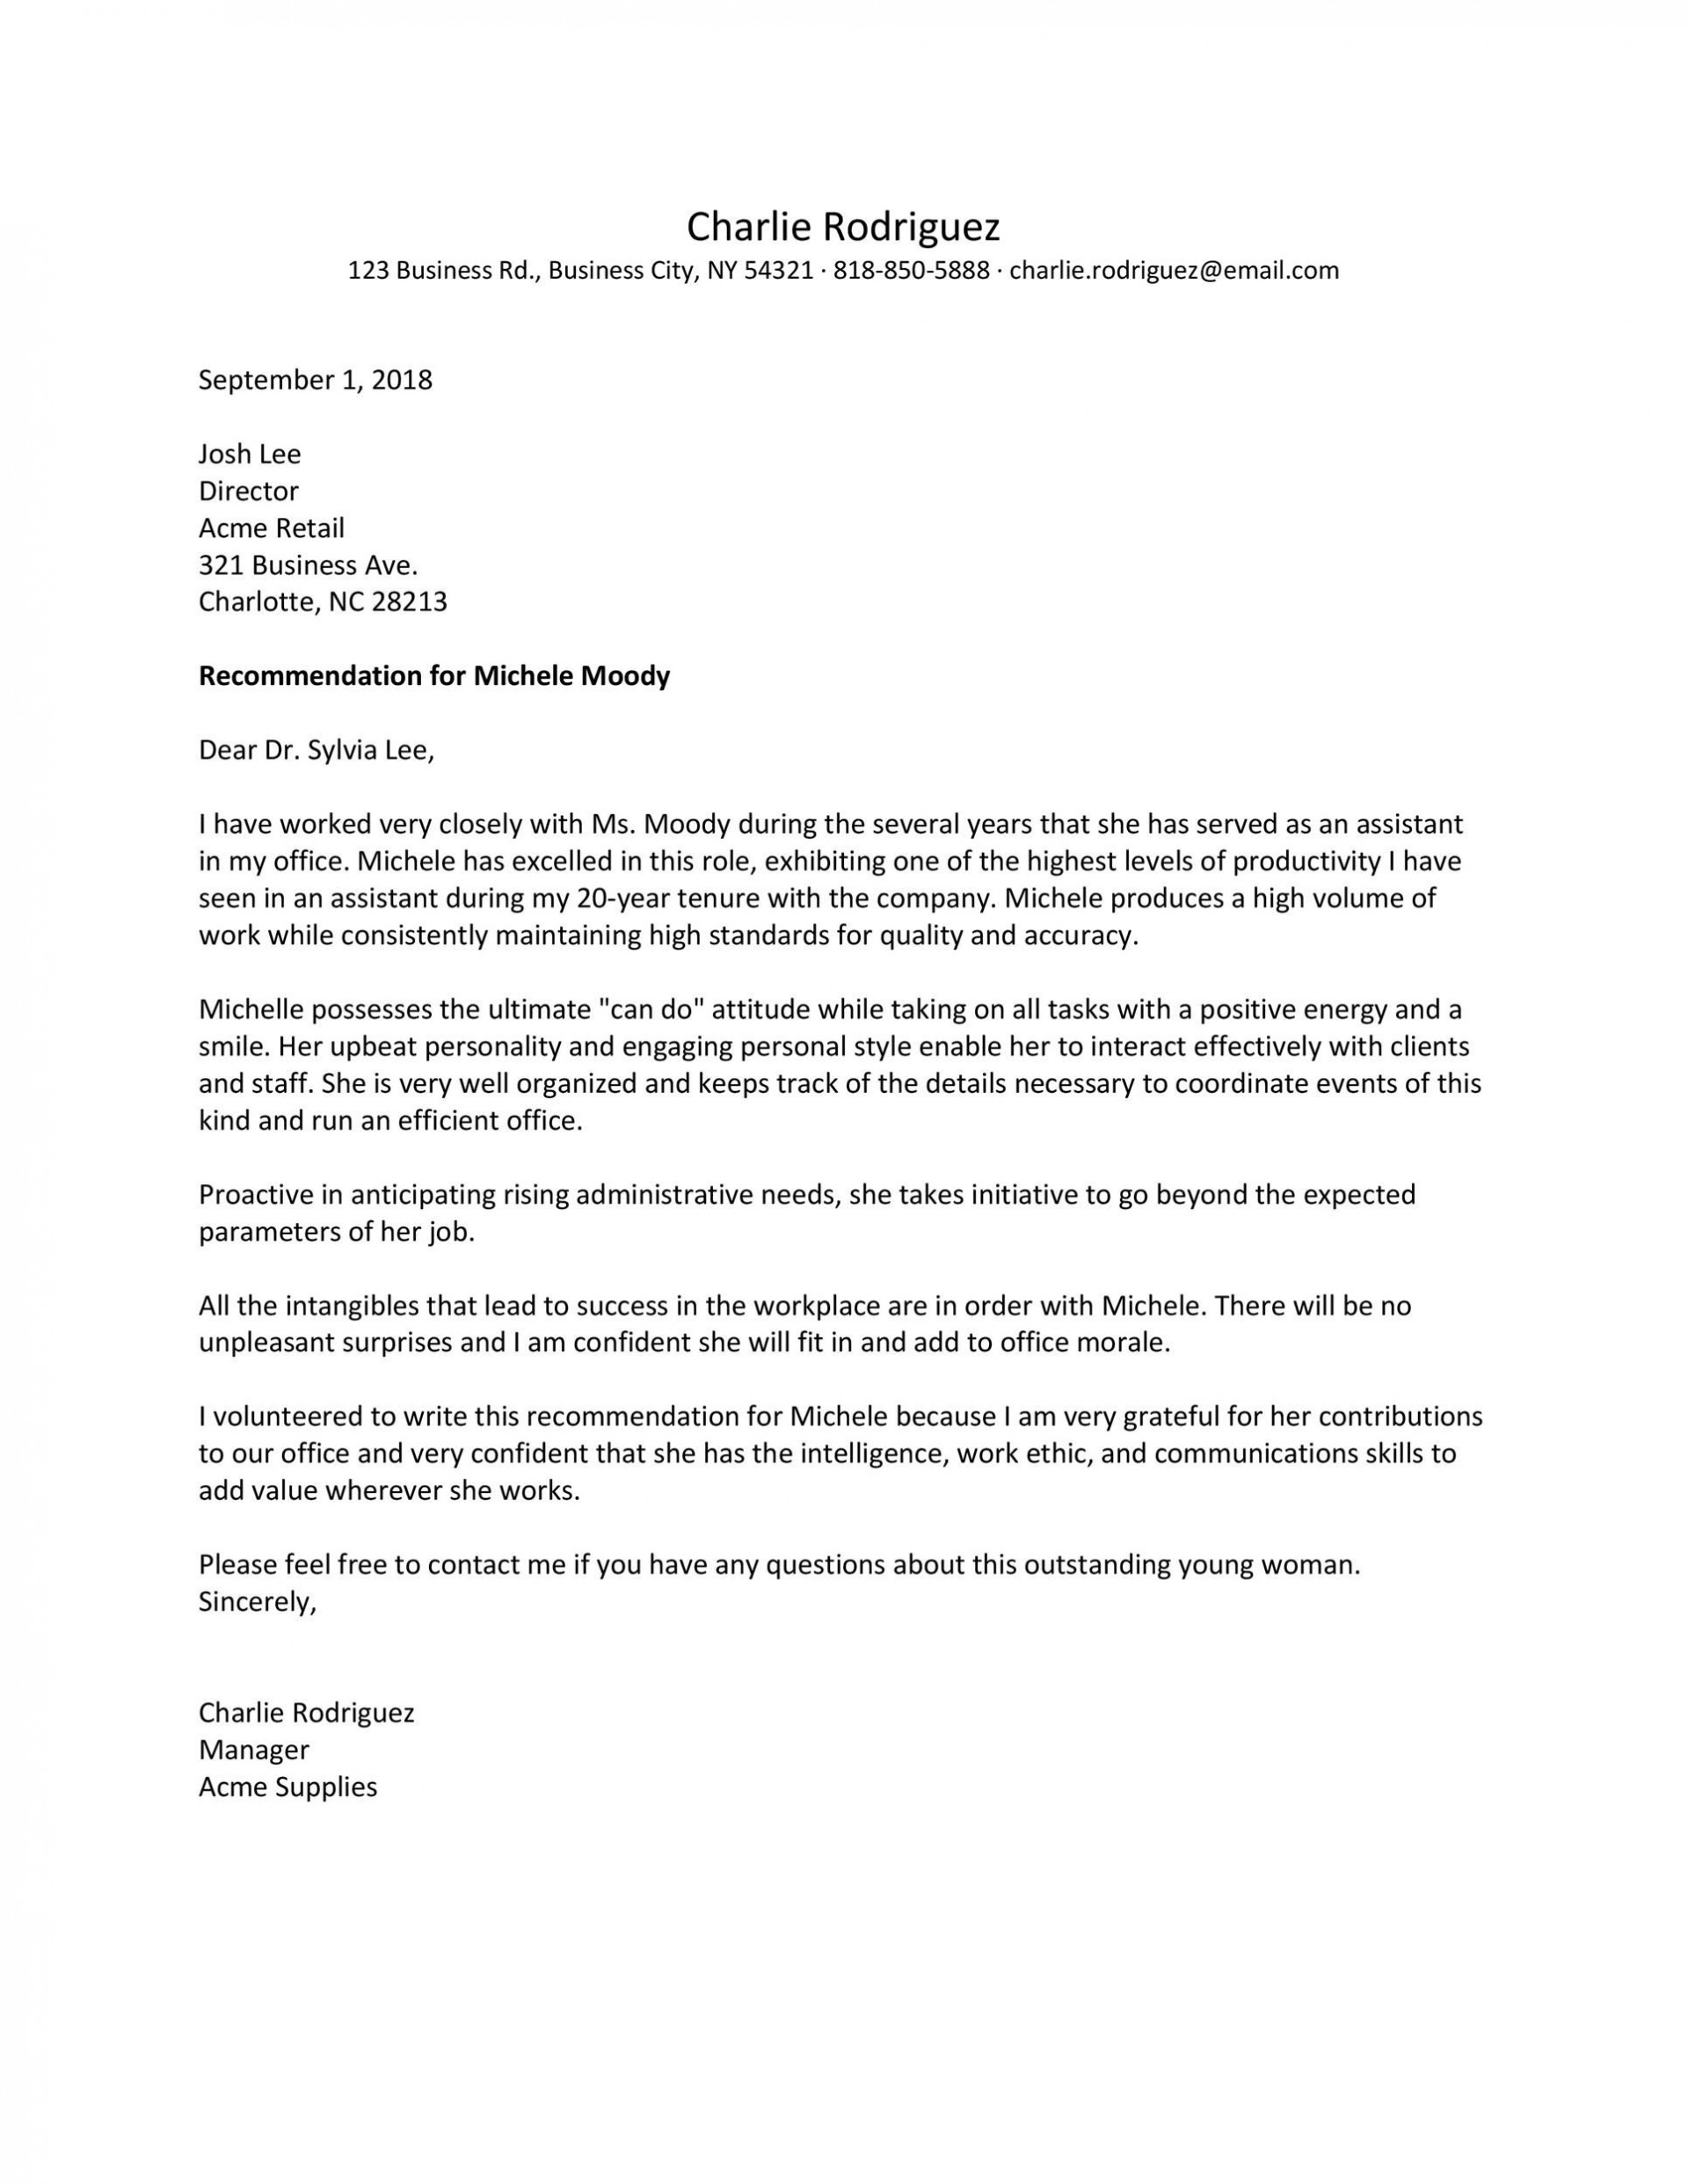 006 Wondrou Personal Letter Of Recommendation Template High Resolution  Templates Character Reference Word1920